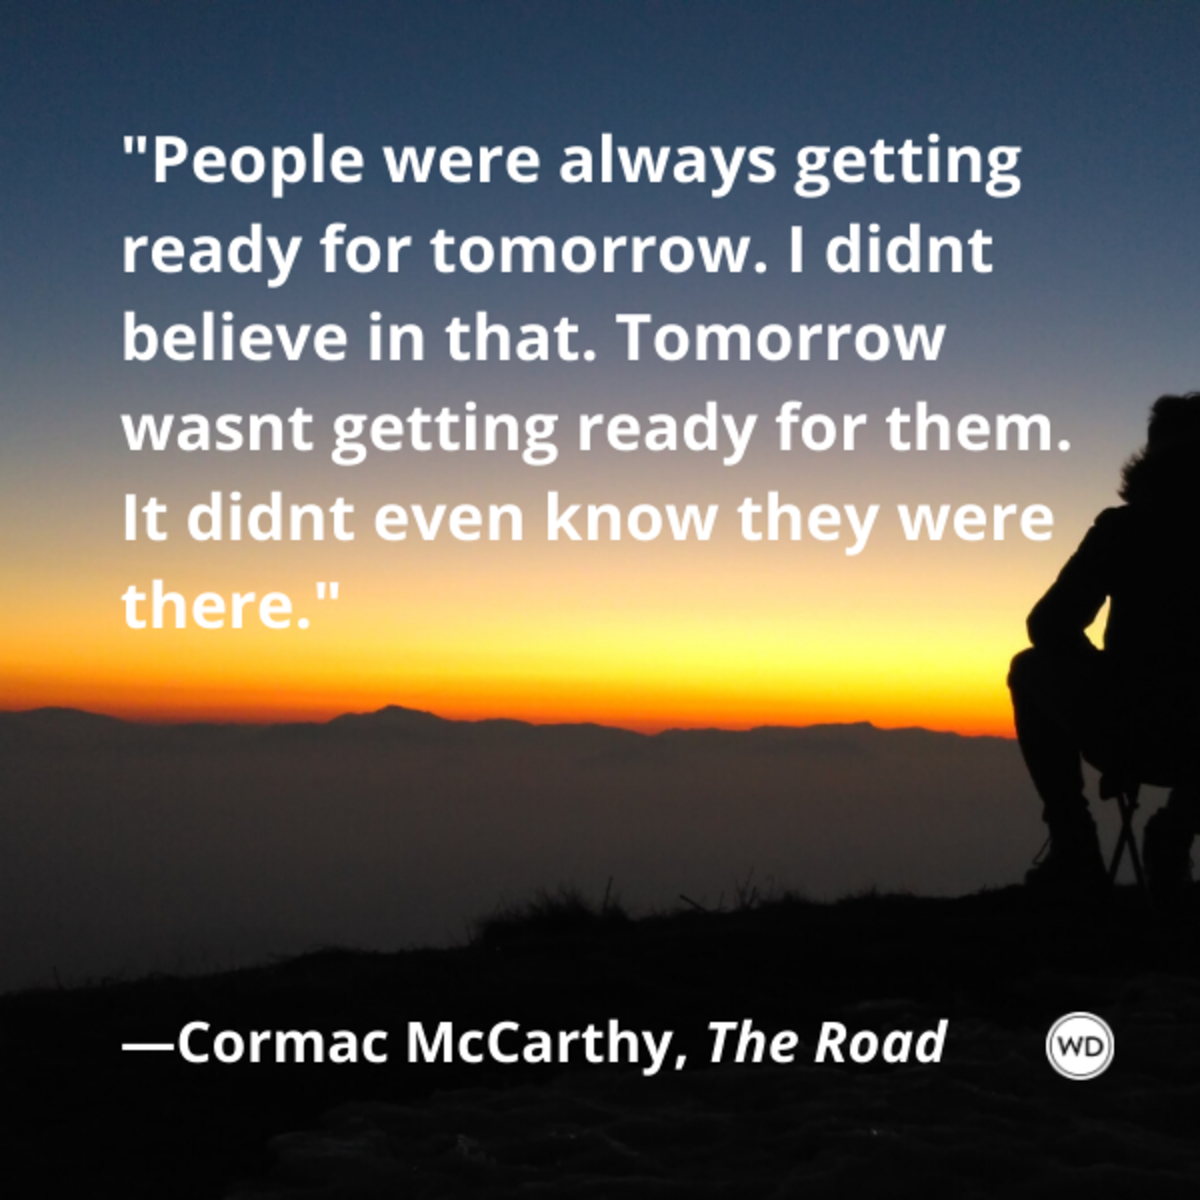 cormac_mccarthy_the_road_quotes_people_were_always_getting_ready_for_tomorrow